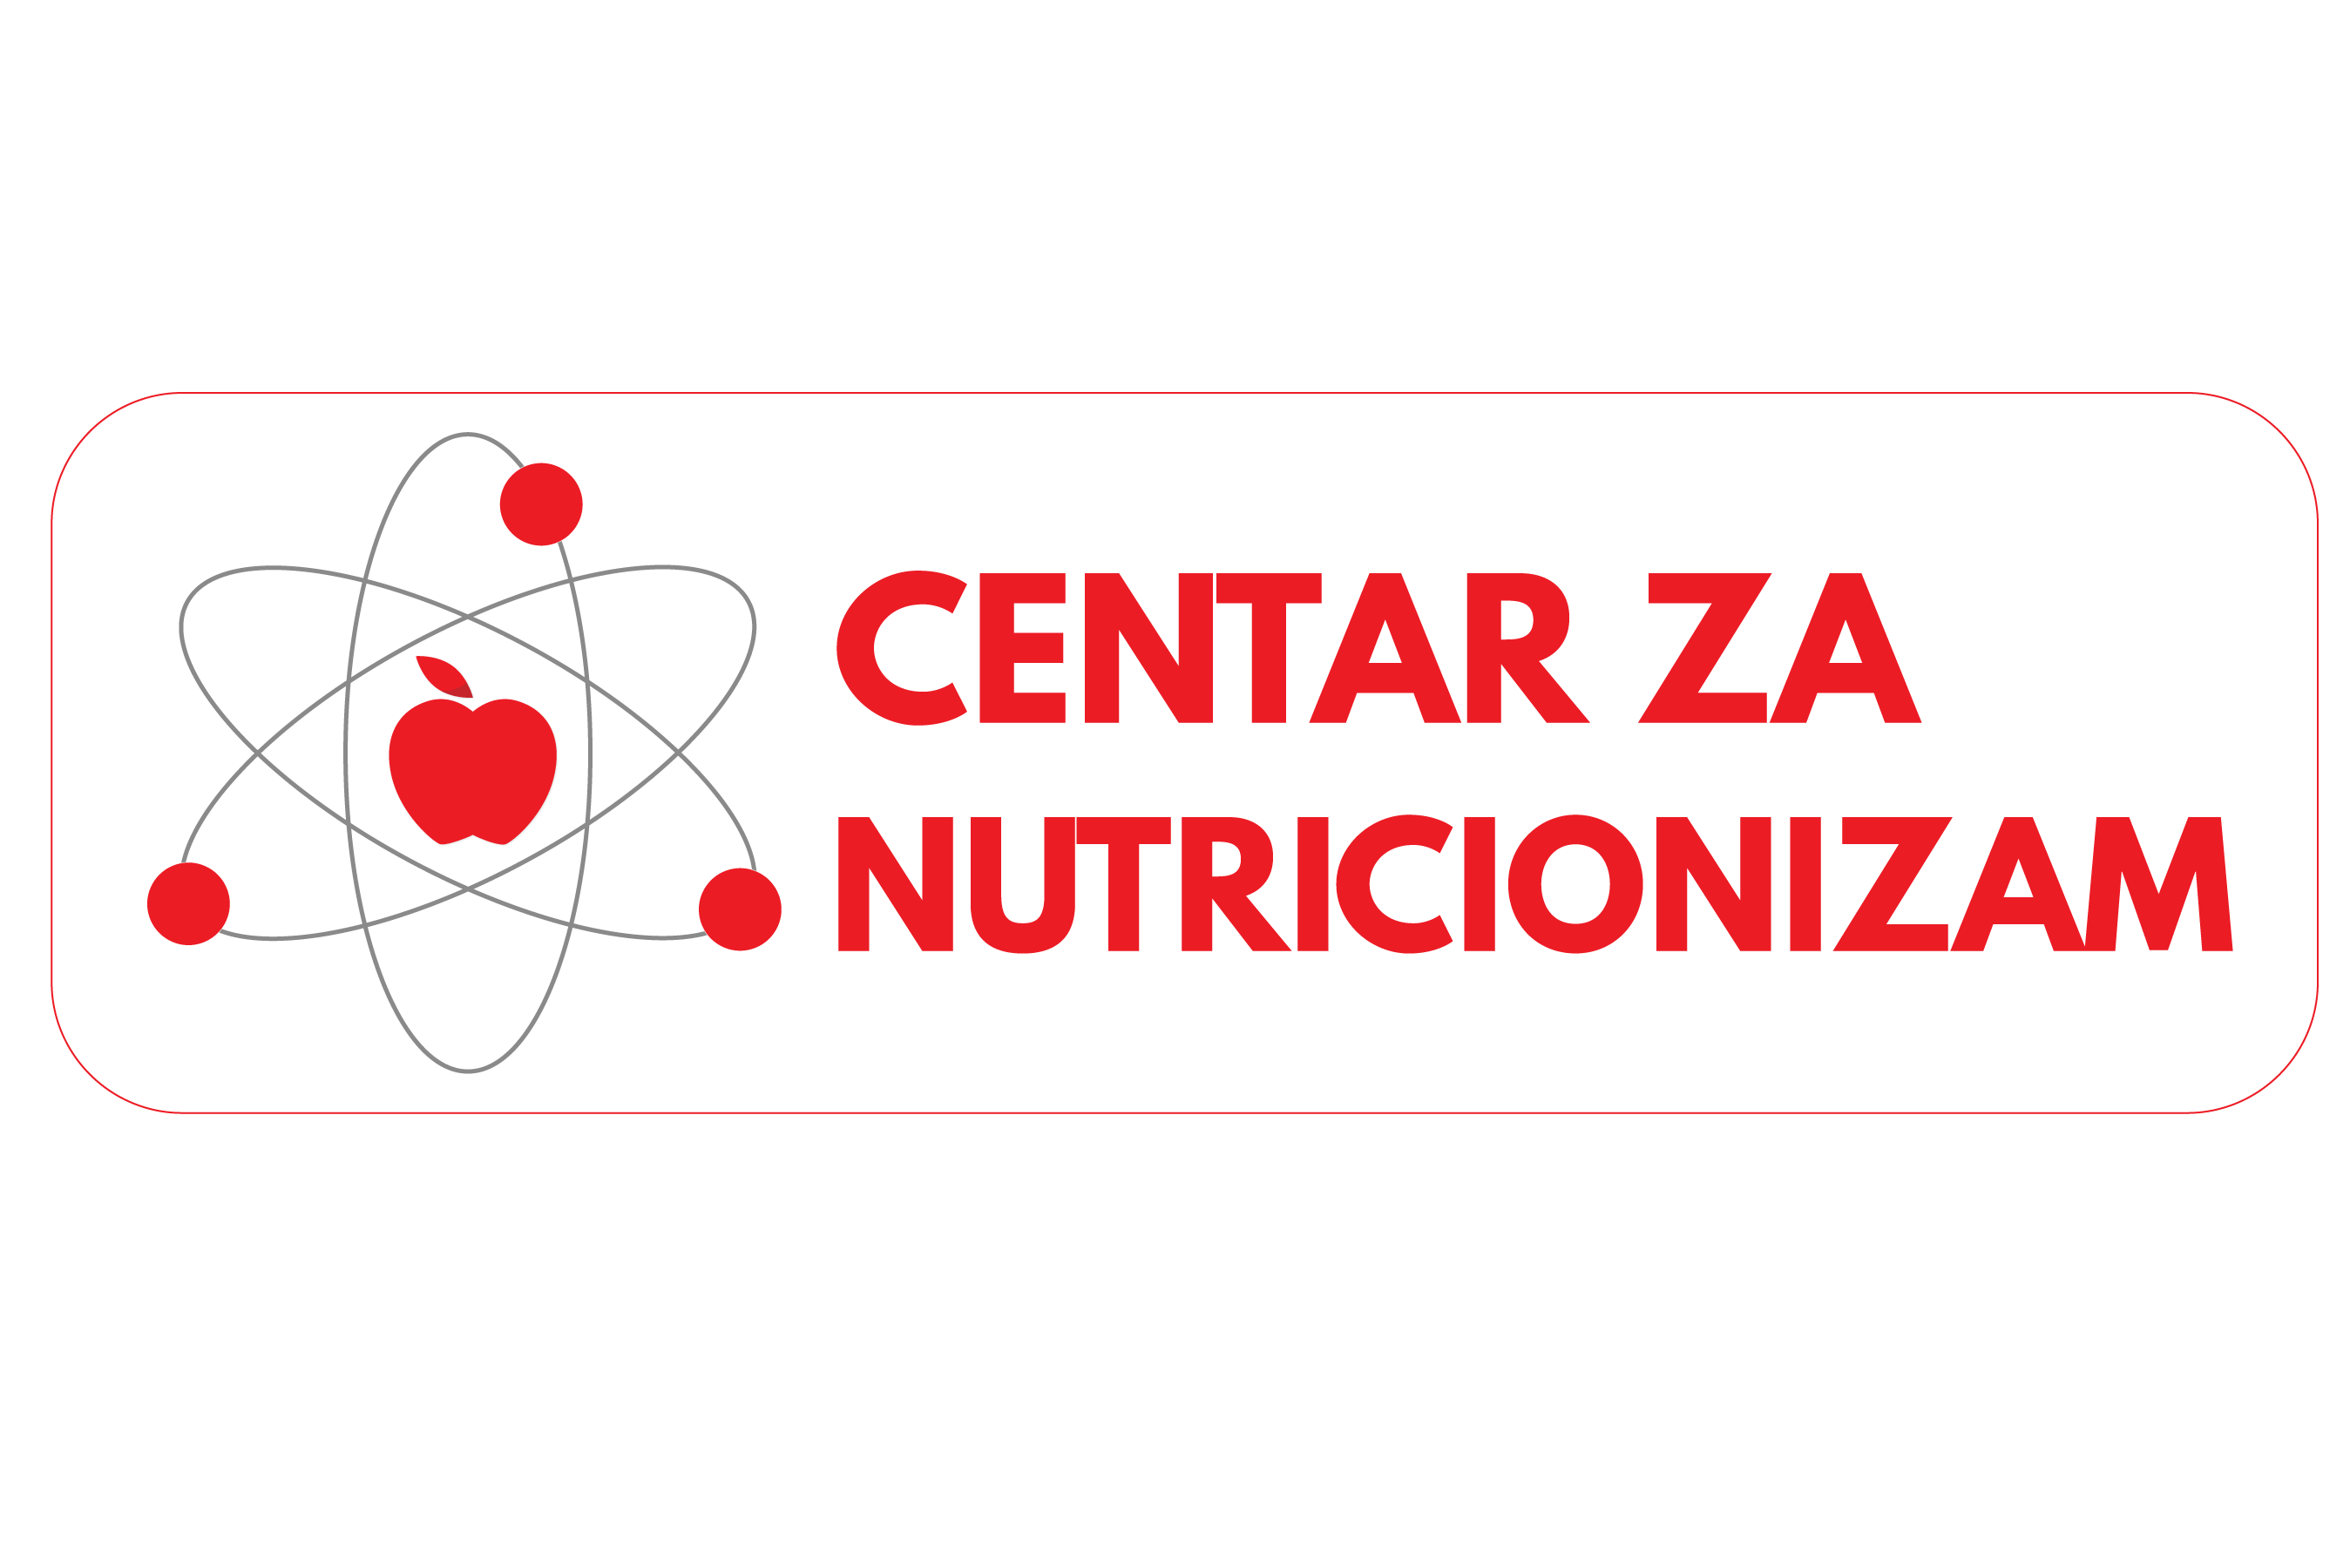 Center of nutrition brand logo